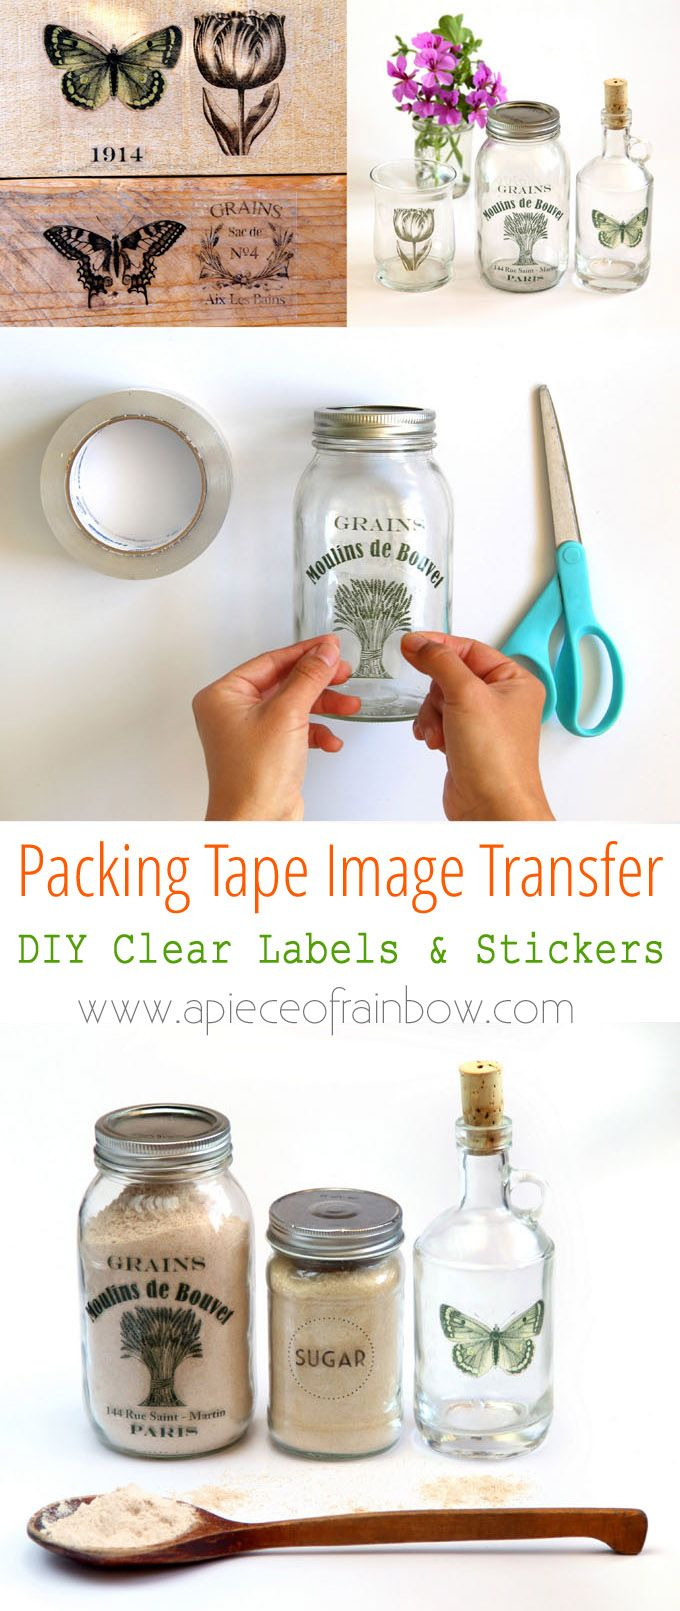 Packing Tape Image Transfer & DIY Clear Labels | Pantry ...